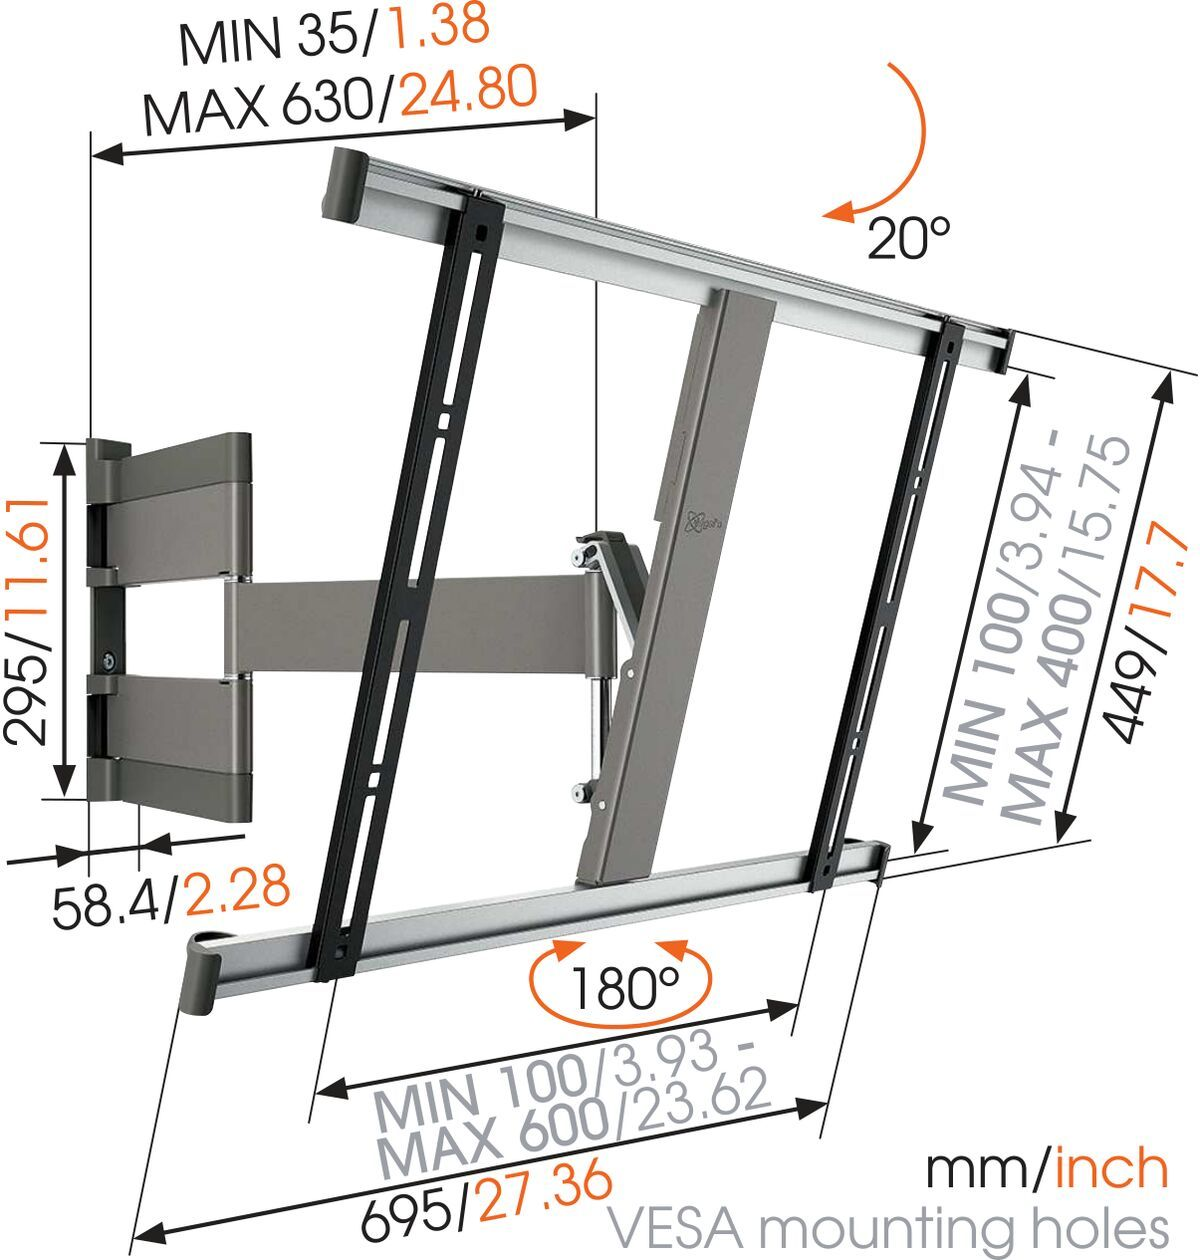 Vogel's THIN 345 UltraThin Full-Motion TV Wall Mount - Suitable for 40 up to 65 inch TVs - Full motion (up to 180°) - Tilt up to 20° - Dimensions